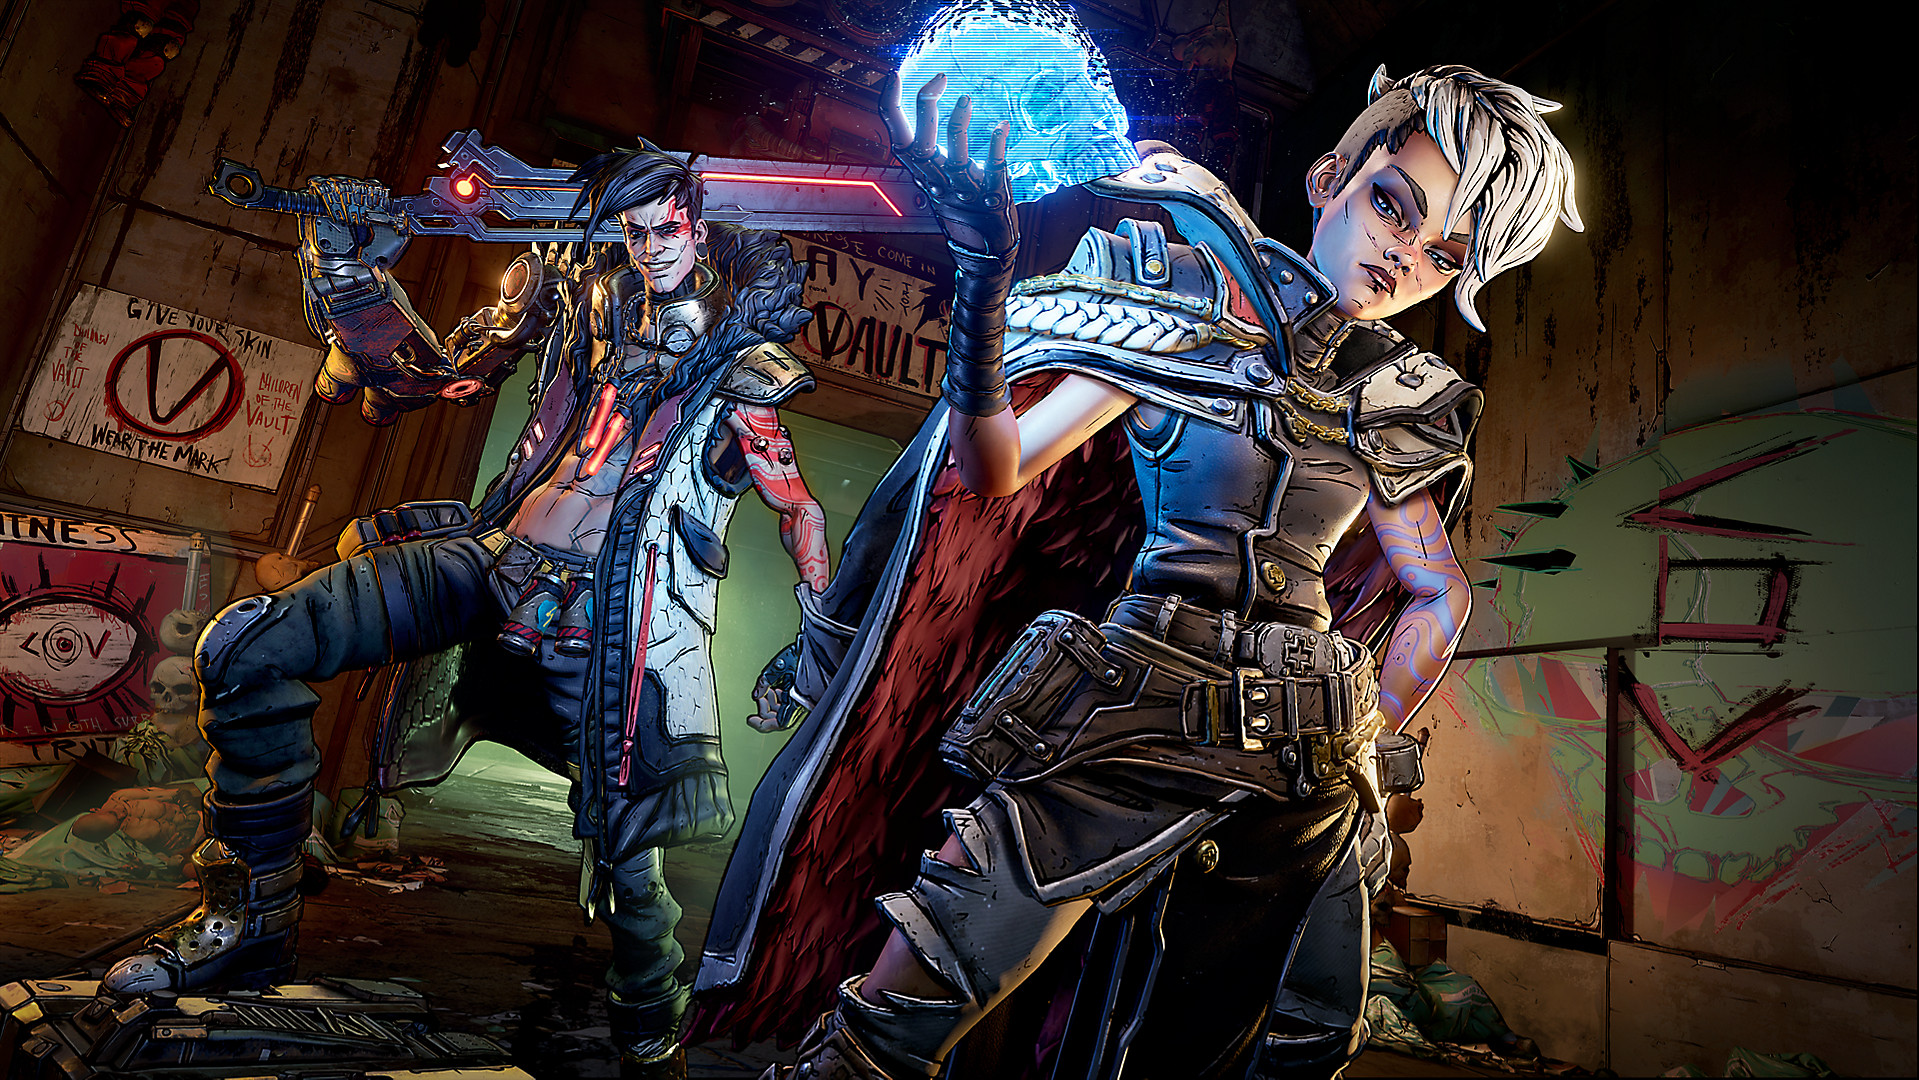 https://media.playstation.com/is/image/SCEA/borderlands-3-screen-04-ps4-us-02apr19?$native_xxl_nt$